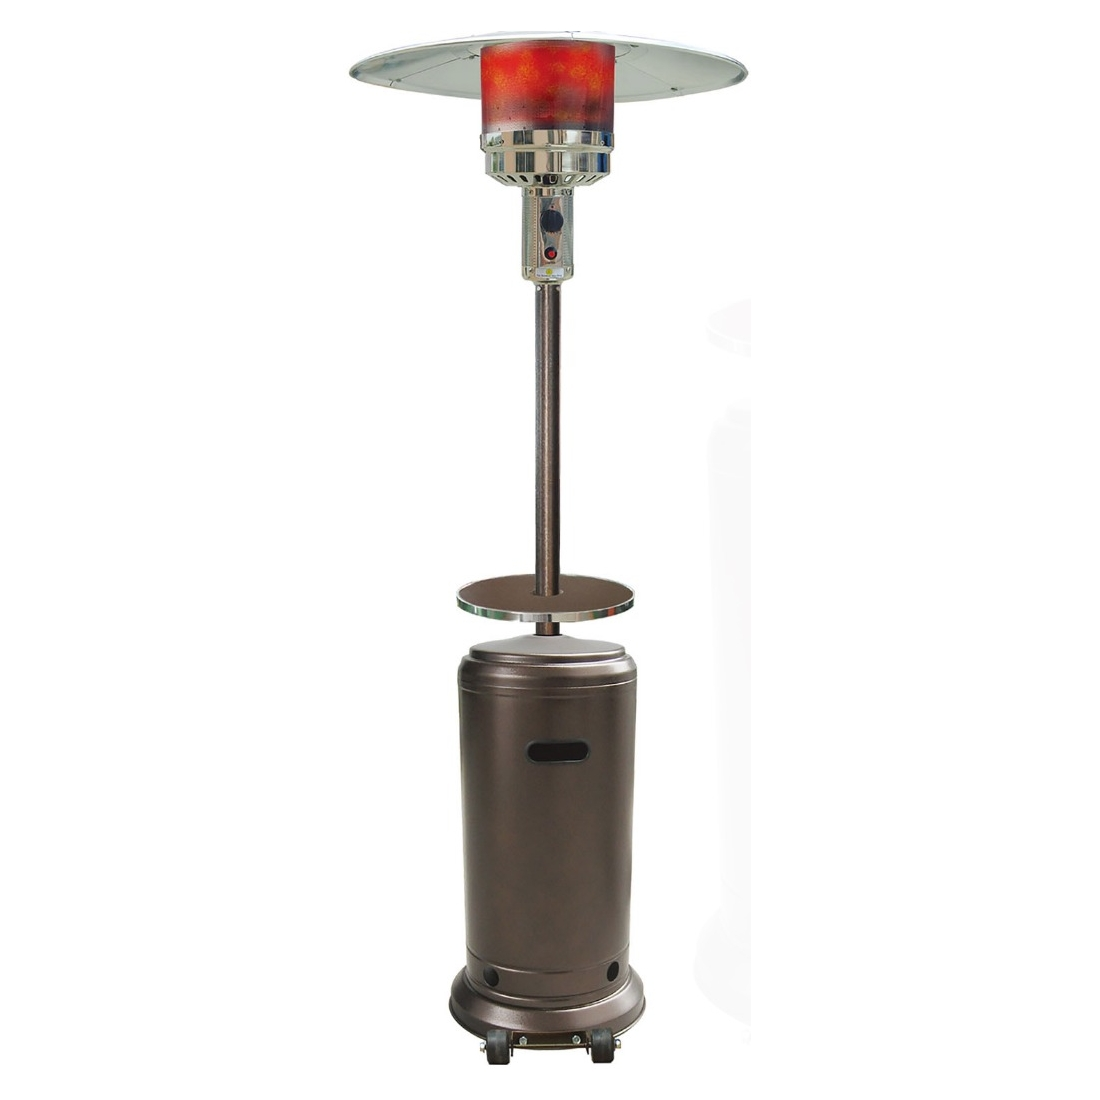 Hanover Outdoor 7-Ft. 41,000 BTU Steel Umbrella Propane Patio Heater by Supplier Generic